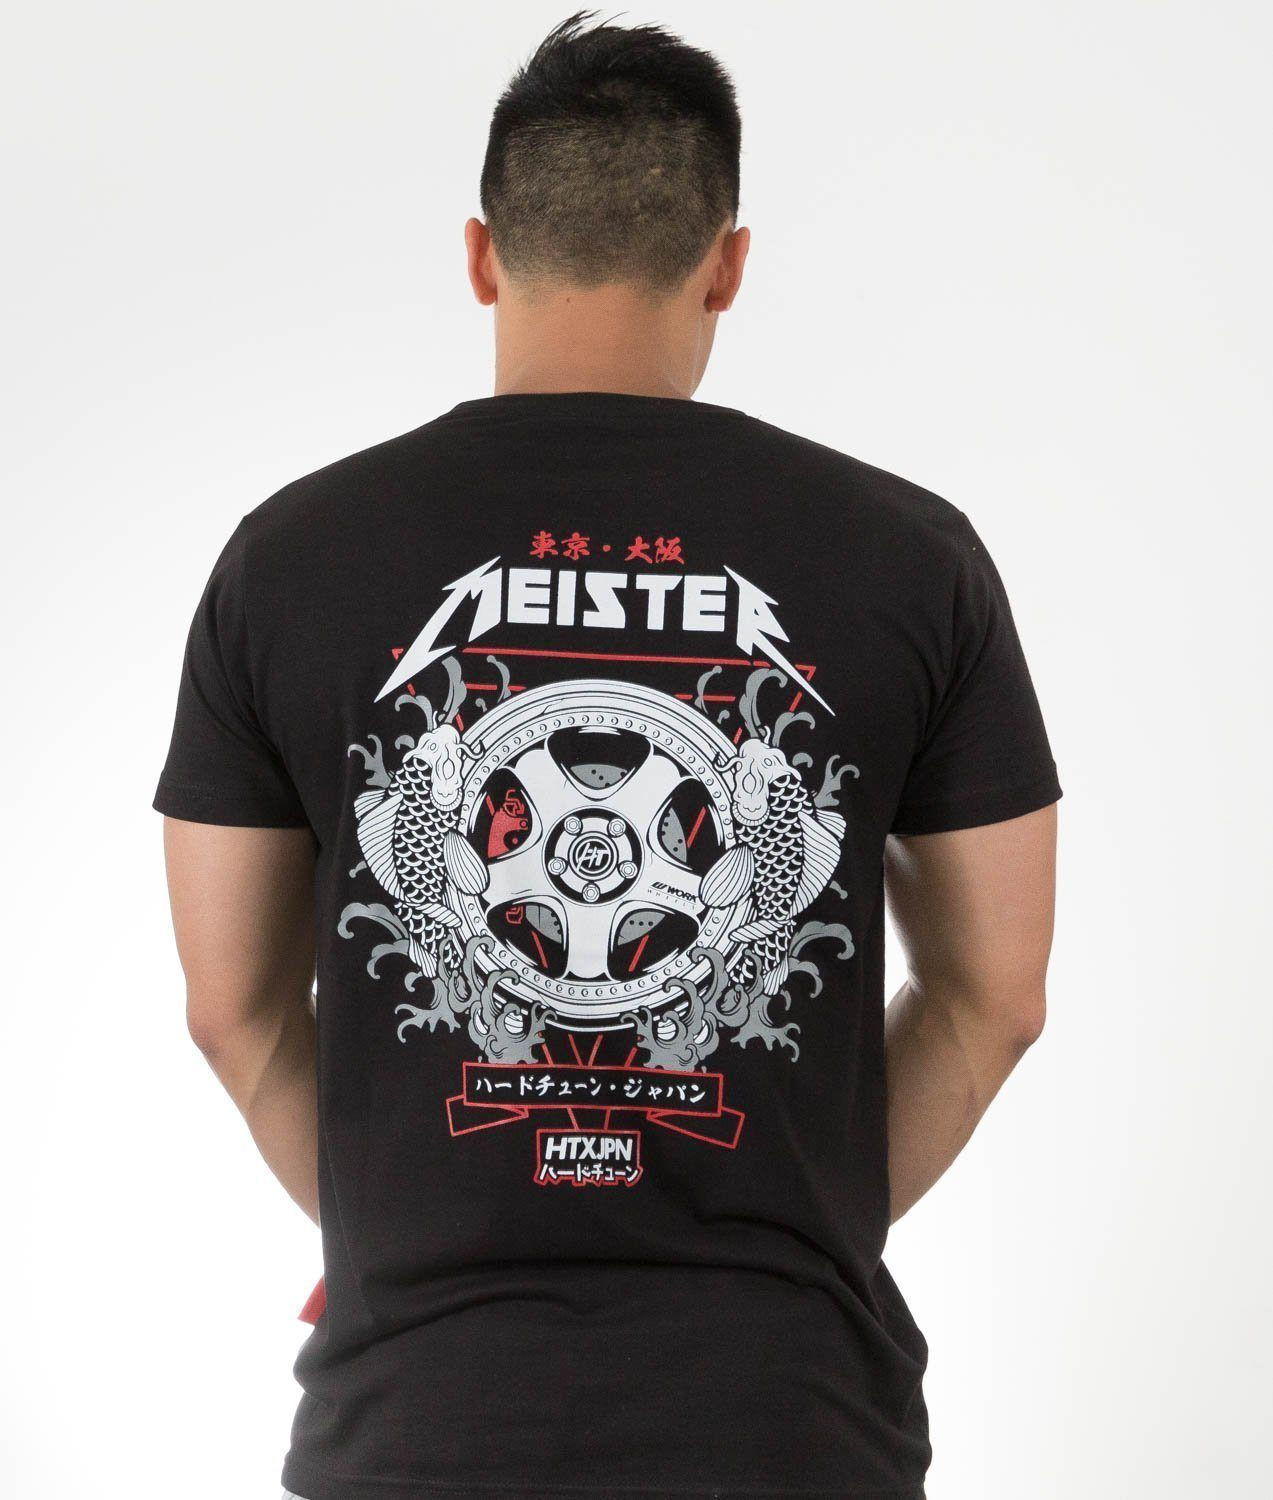 Tee - Work Meister Tattoo Band Tee